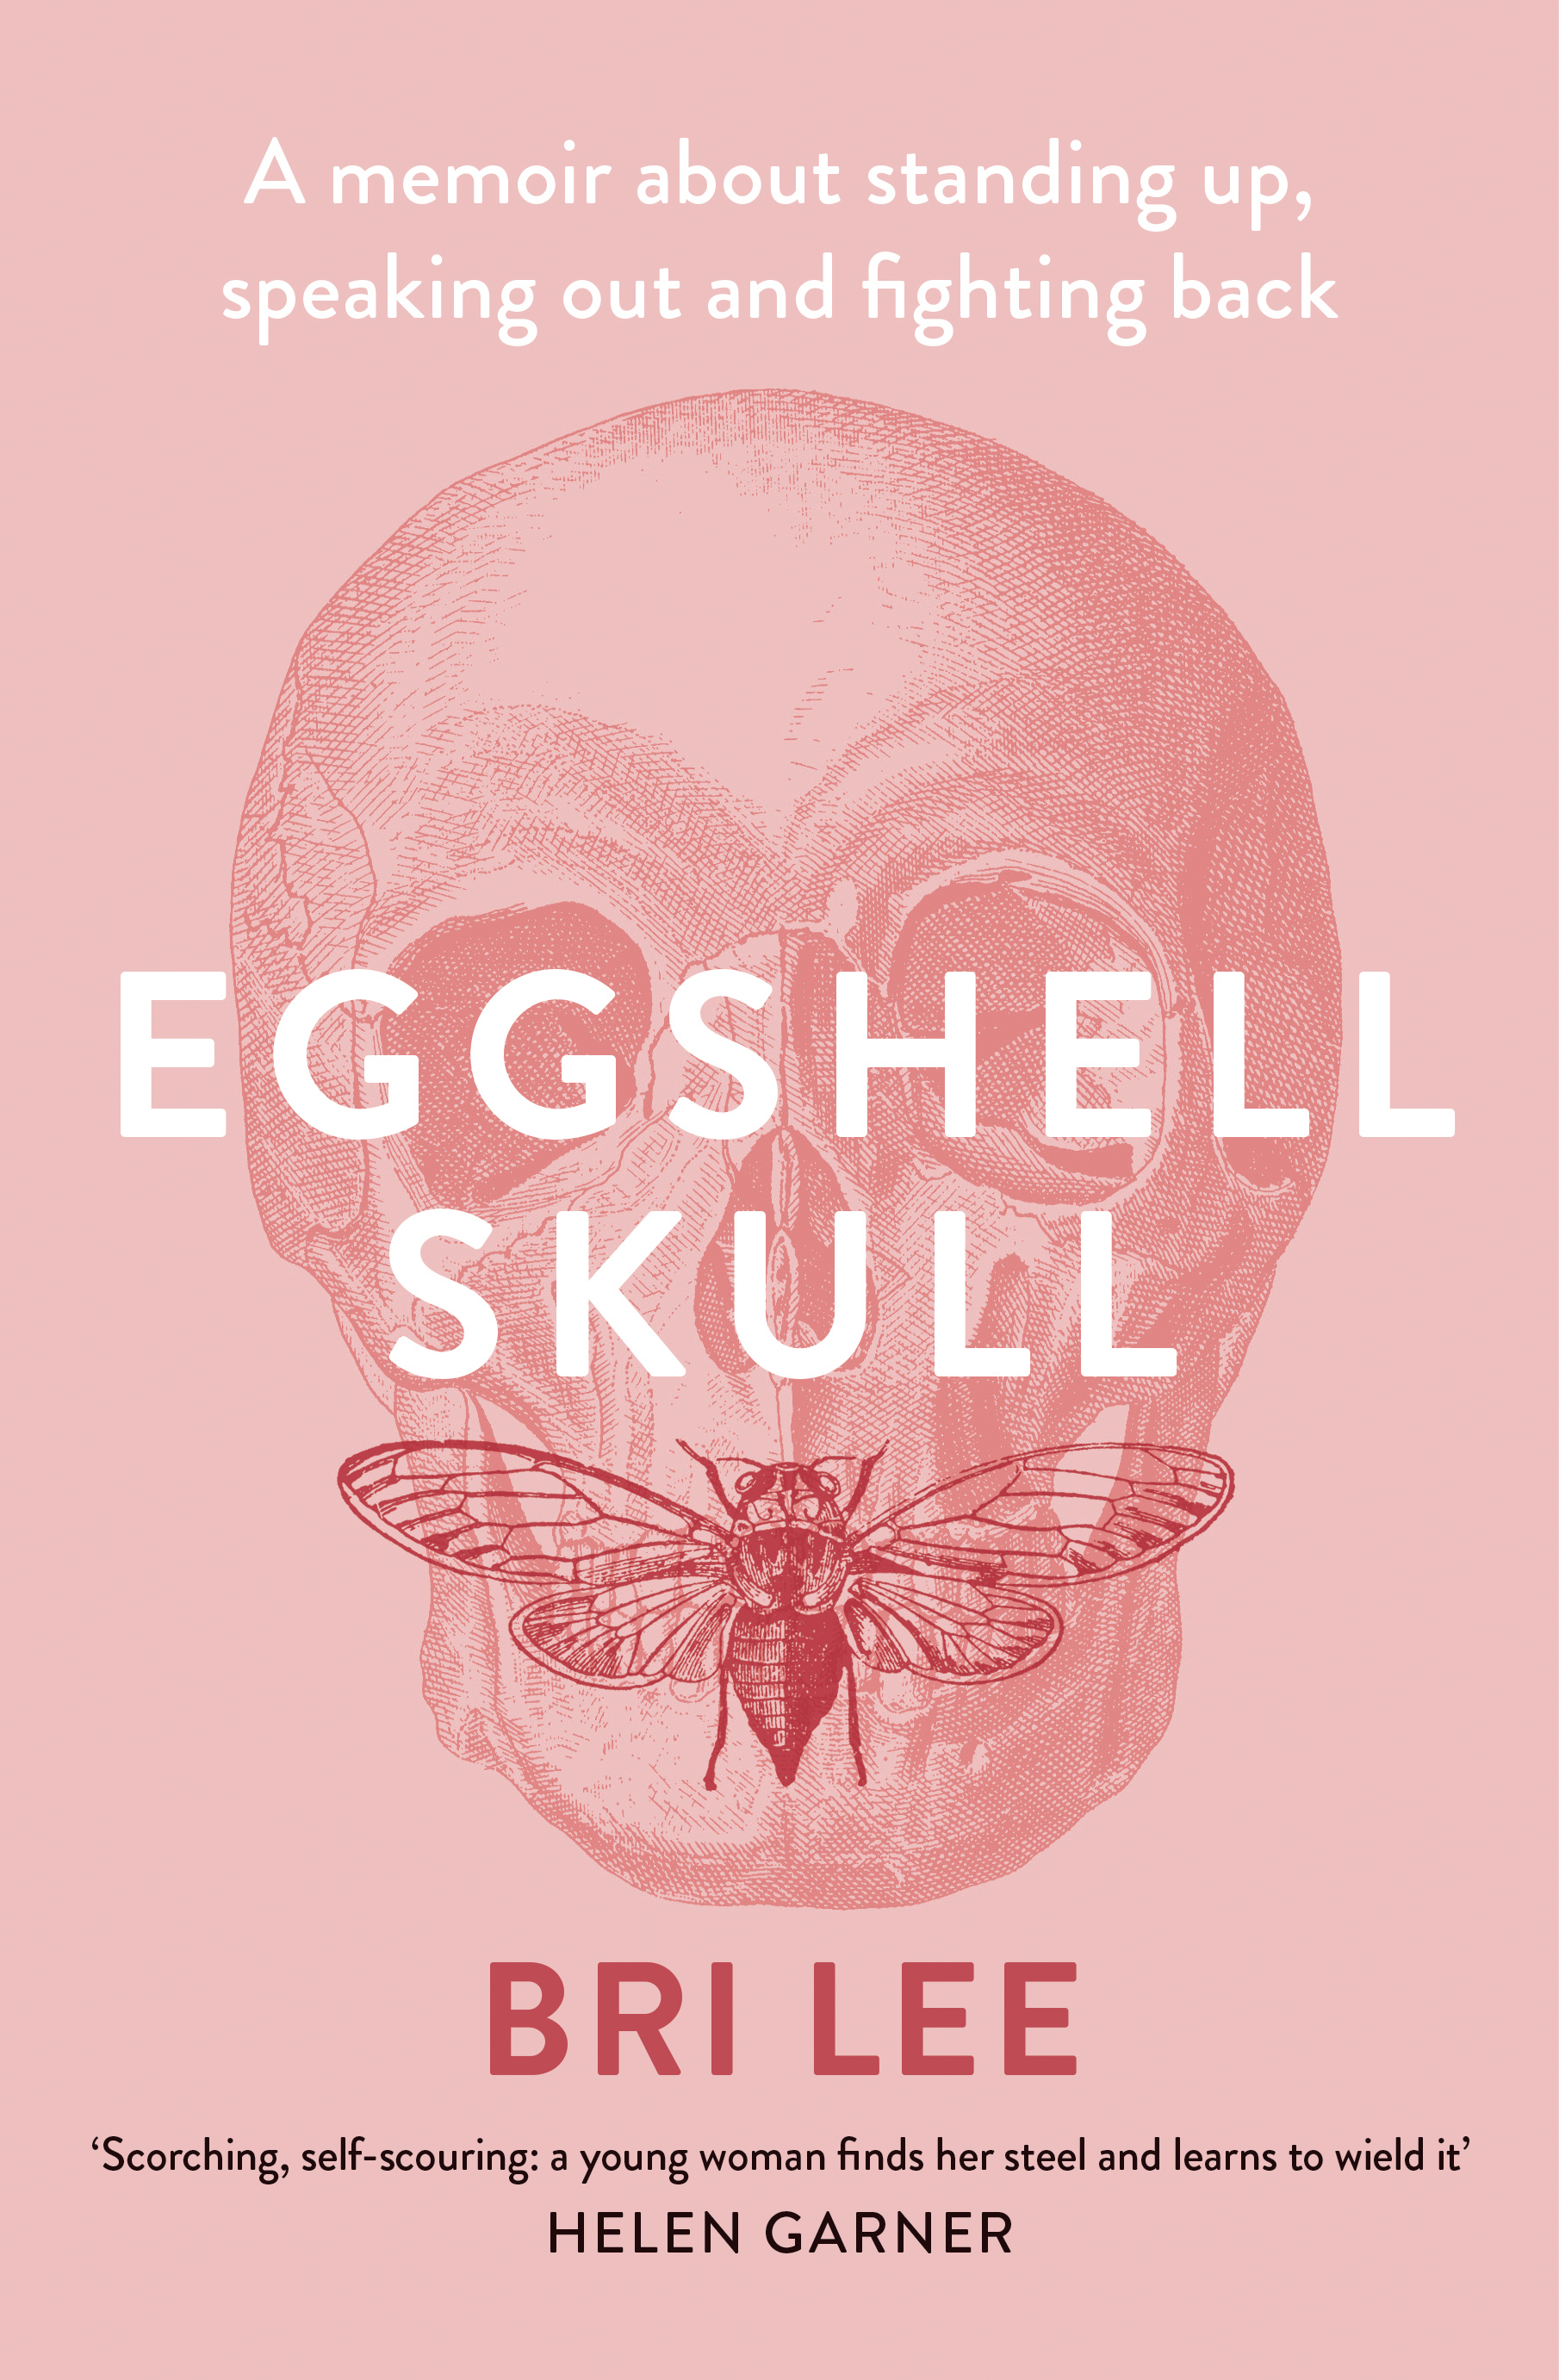 Eggshell Skull by Bri Lee, ISBN: 9781760295776